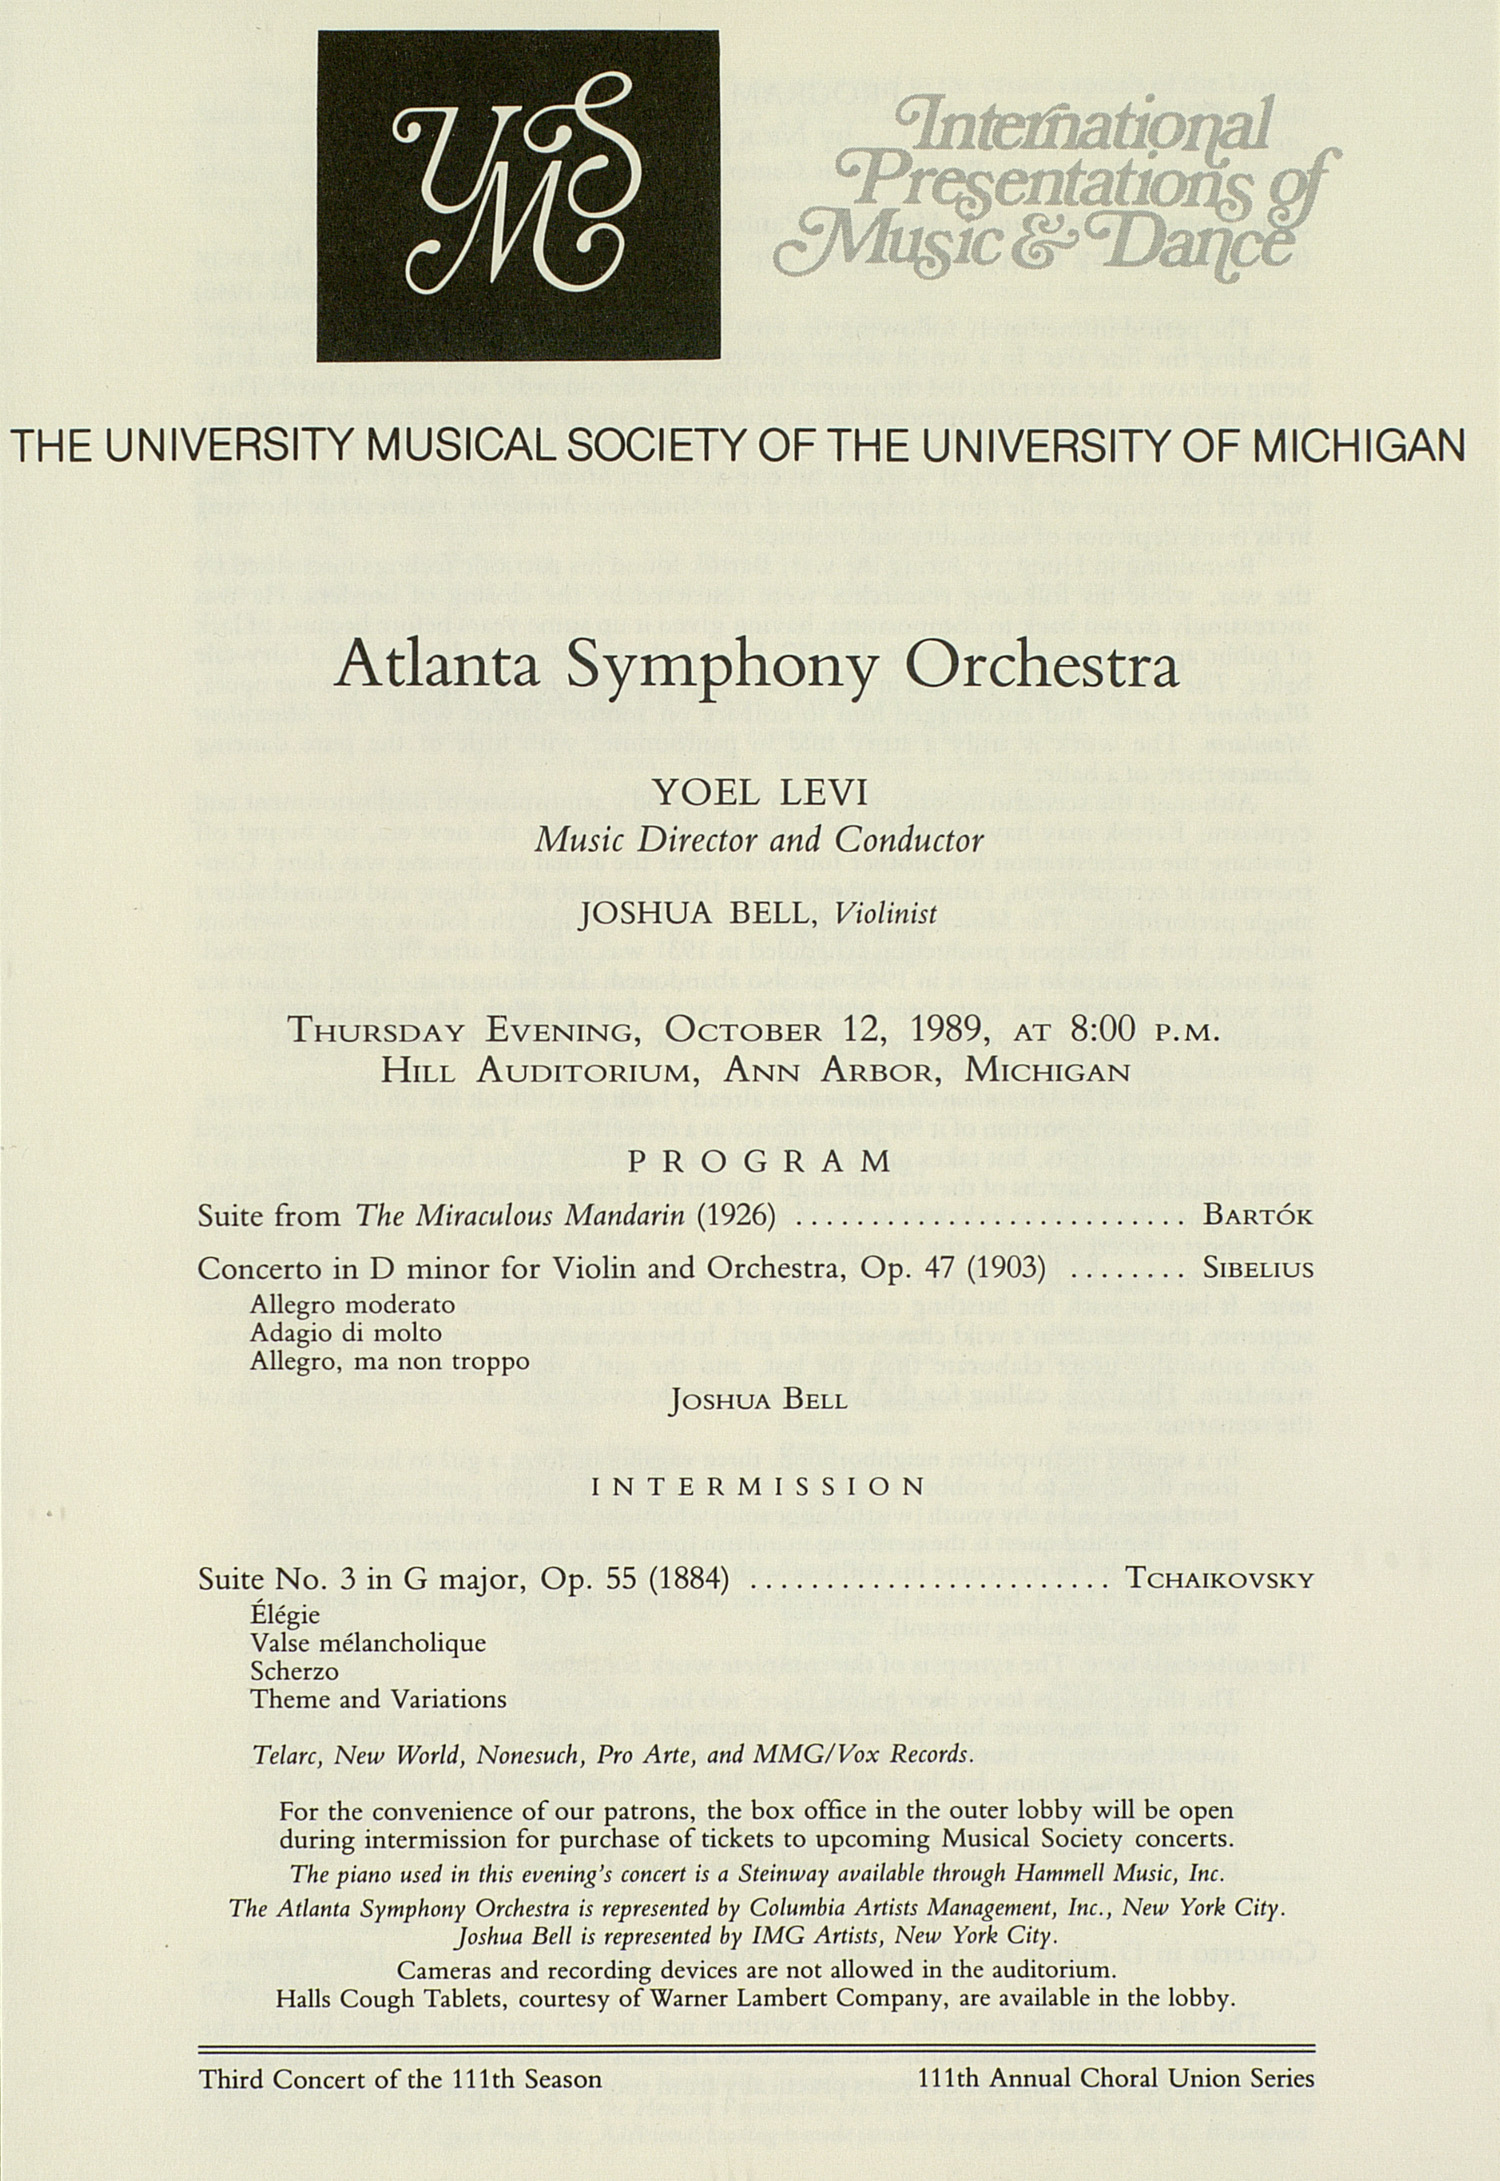 UMS Concert Program, October 12, 1989: International Presentations Of Music & Dance -- Atlanta Symphony Orchestra image